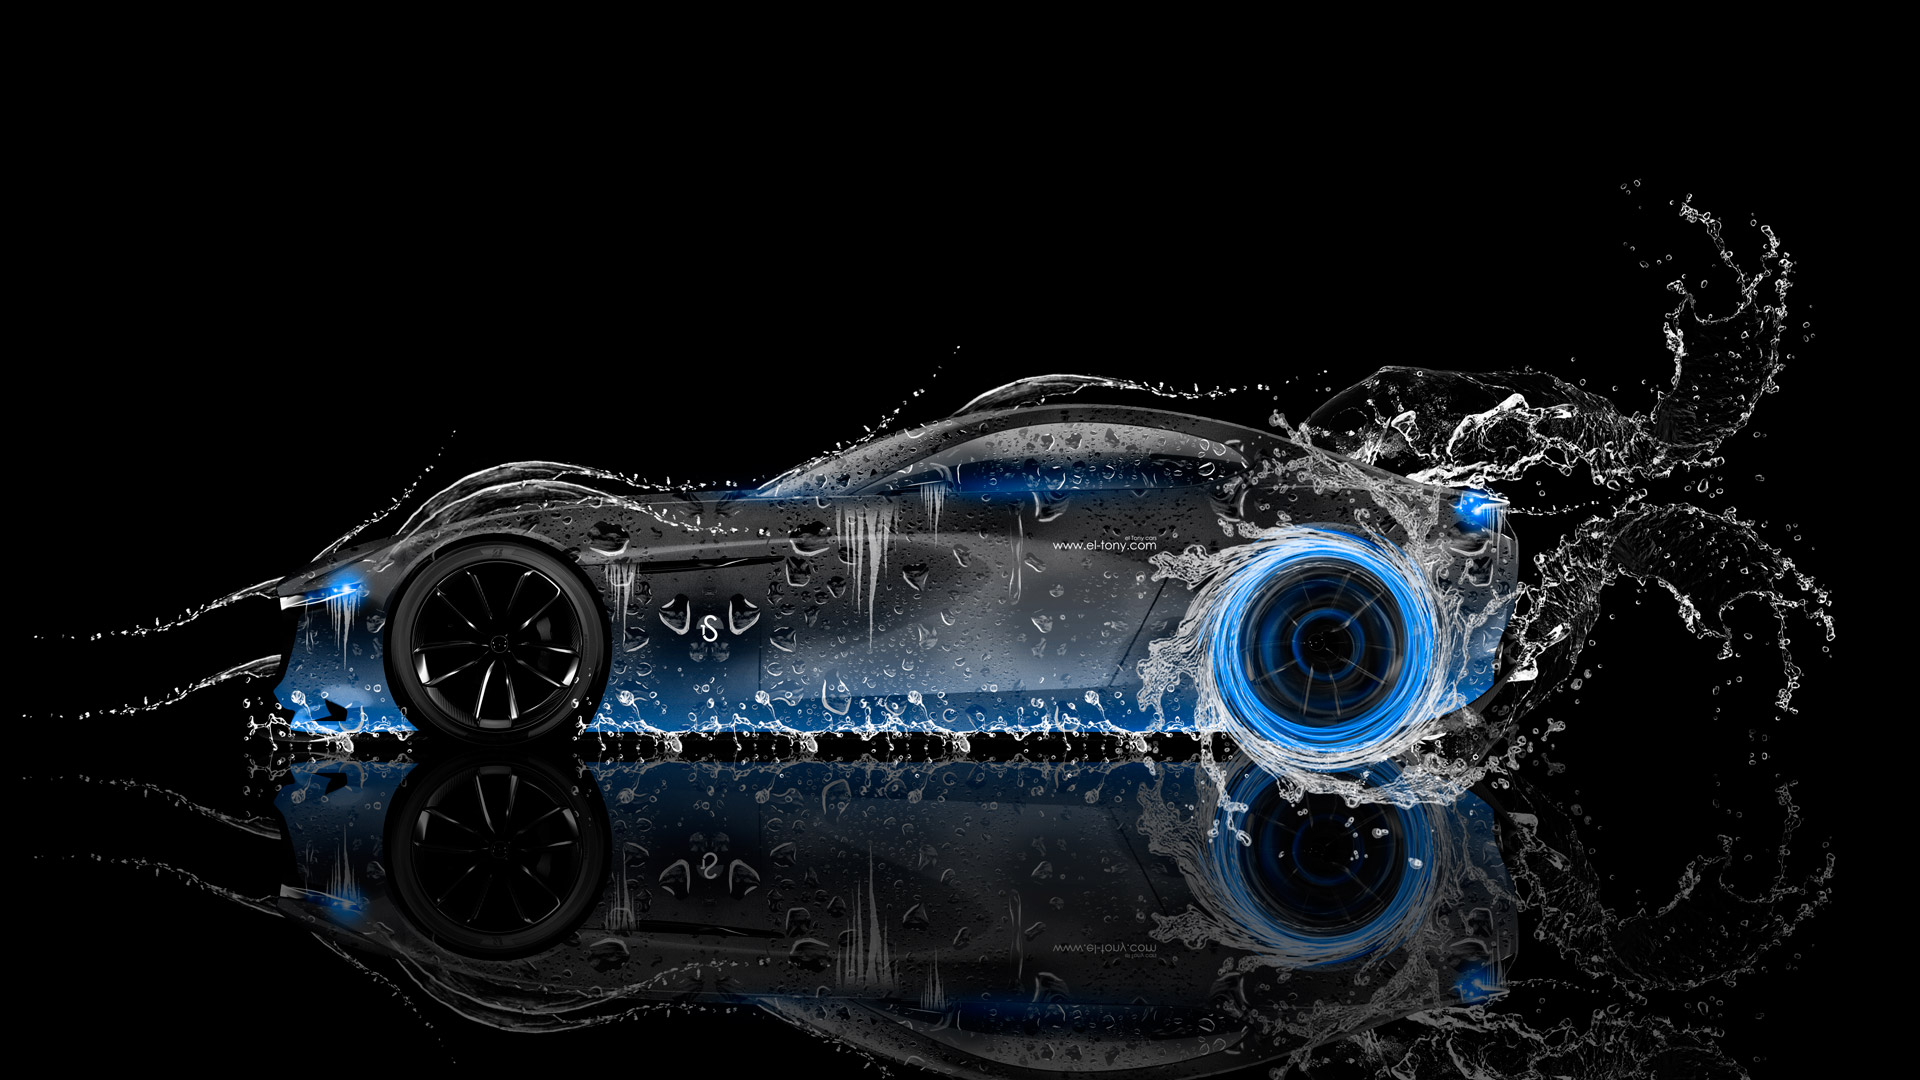 http://www.el-tony.com/wp-content/uploads/2015/11/Mazda-RX-Vision-Concept-Side-Super-Water-Car-2015-Fantasy-Blue-Black-Colors-HD-Wallpapers-design-by-Tony-Kokhan-www.el-tony.com-image.jpg